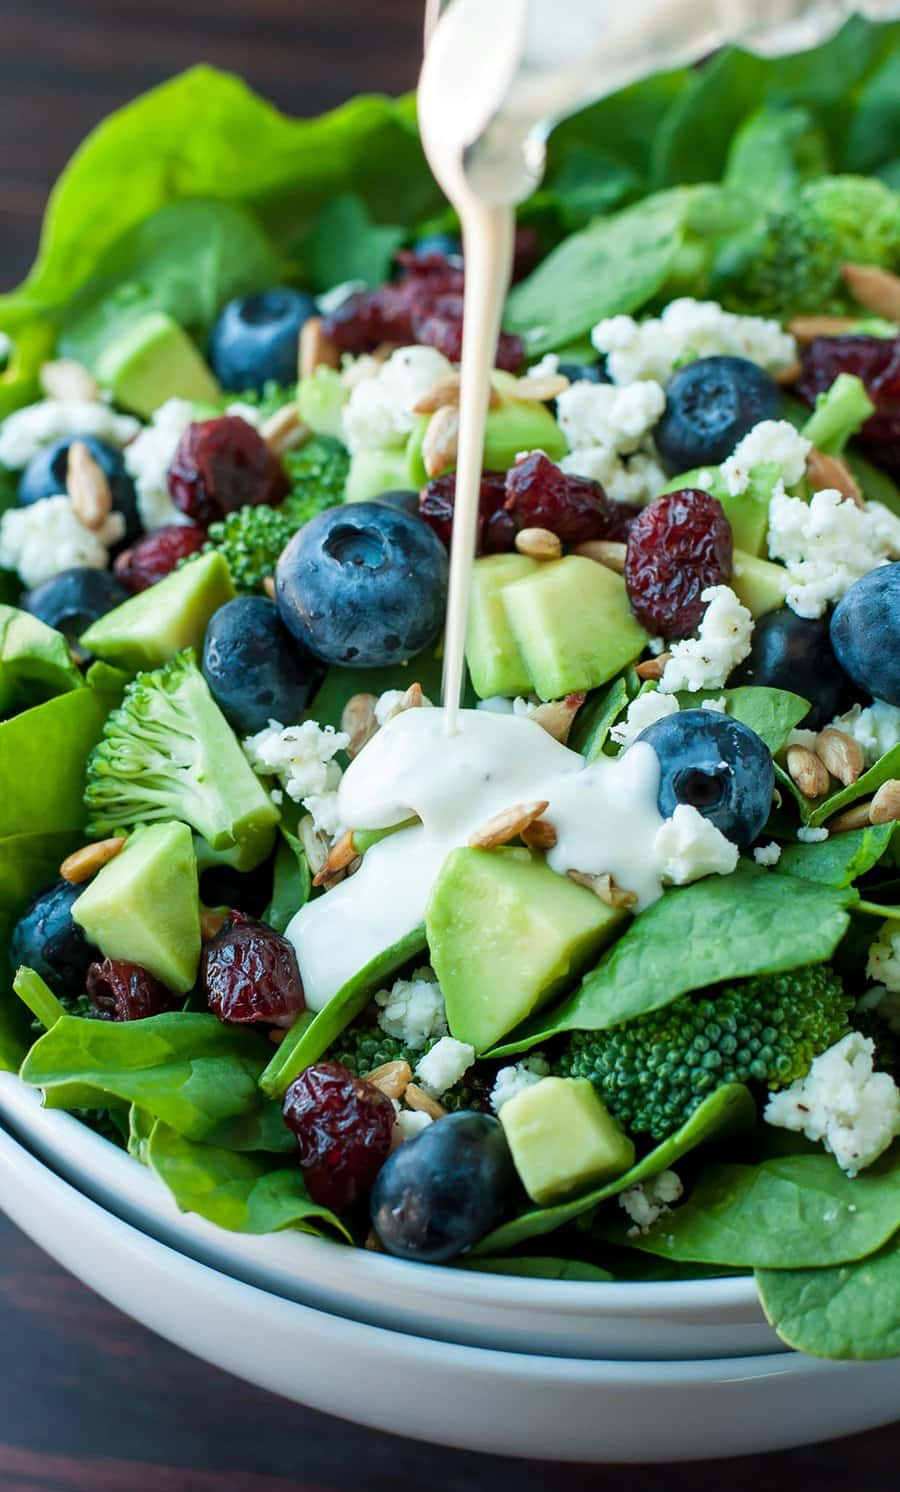 Blueberry Broccoli Spinach Salad with Poppyseed Ranch Dressing | Peas and Crayons